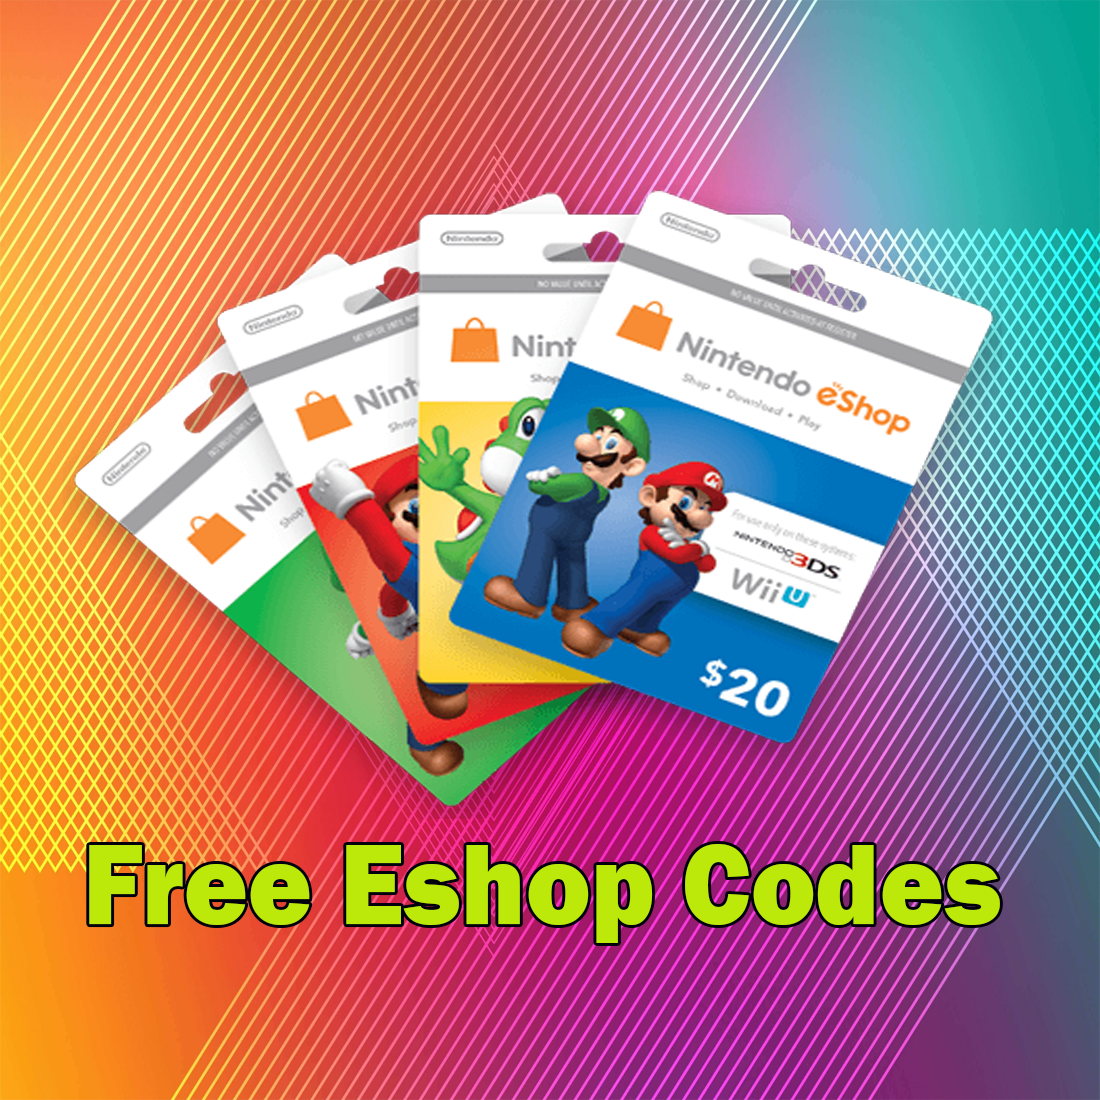 You can buy games in the Nintendo Eshop store  However, in